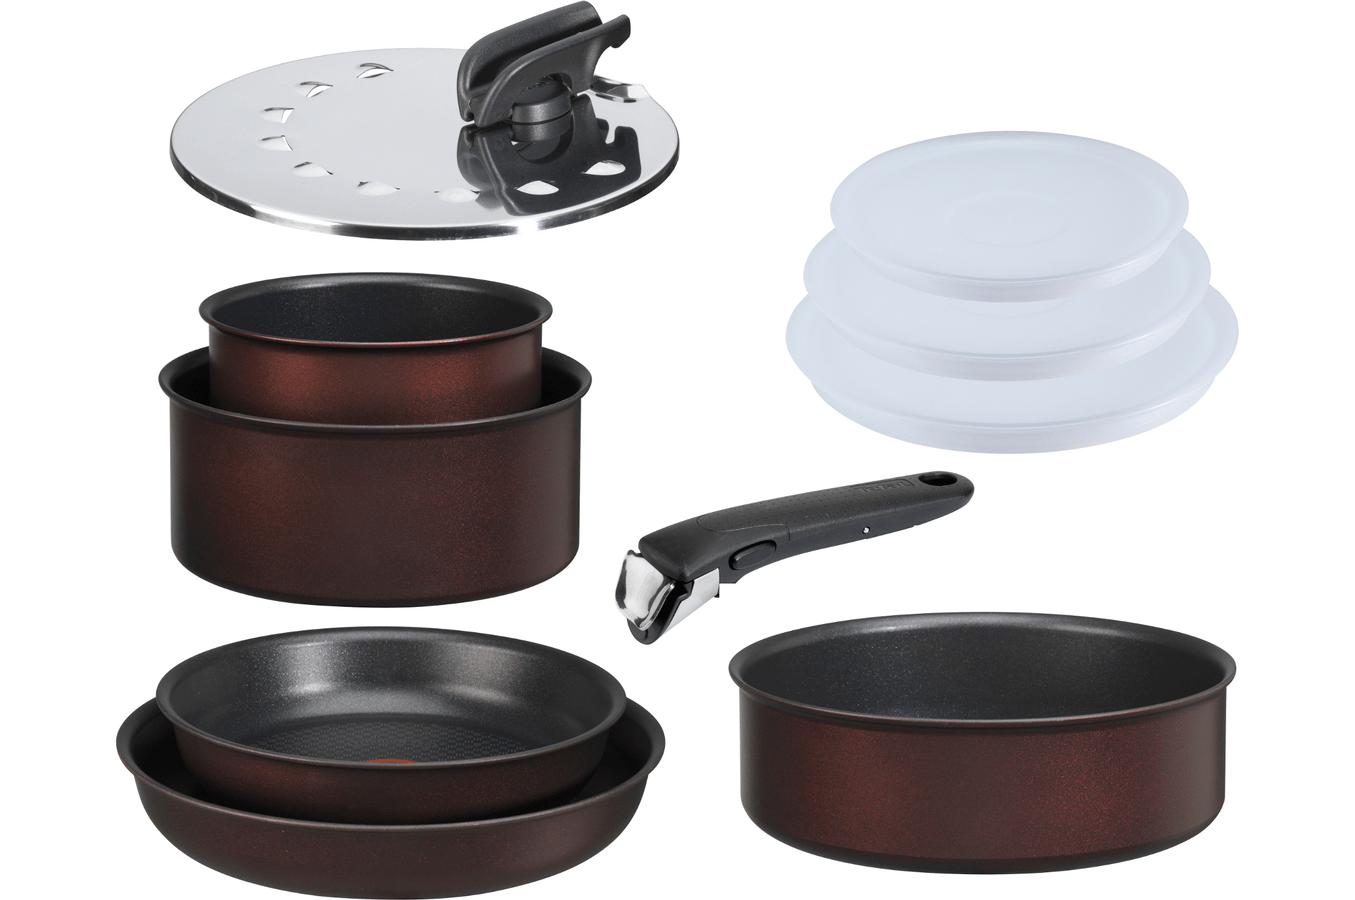 Poele Sauteuse Tefal Poele Tefal Ingenio Induction